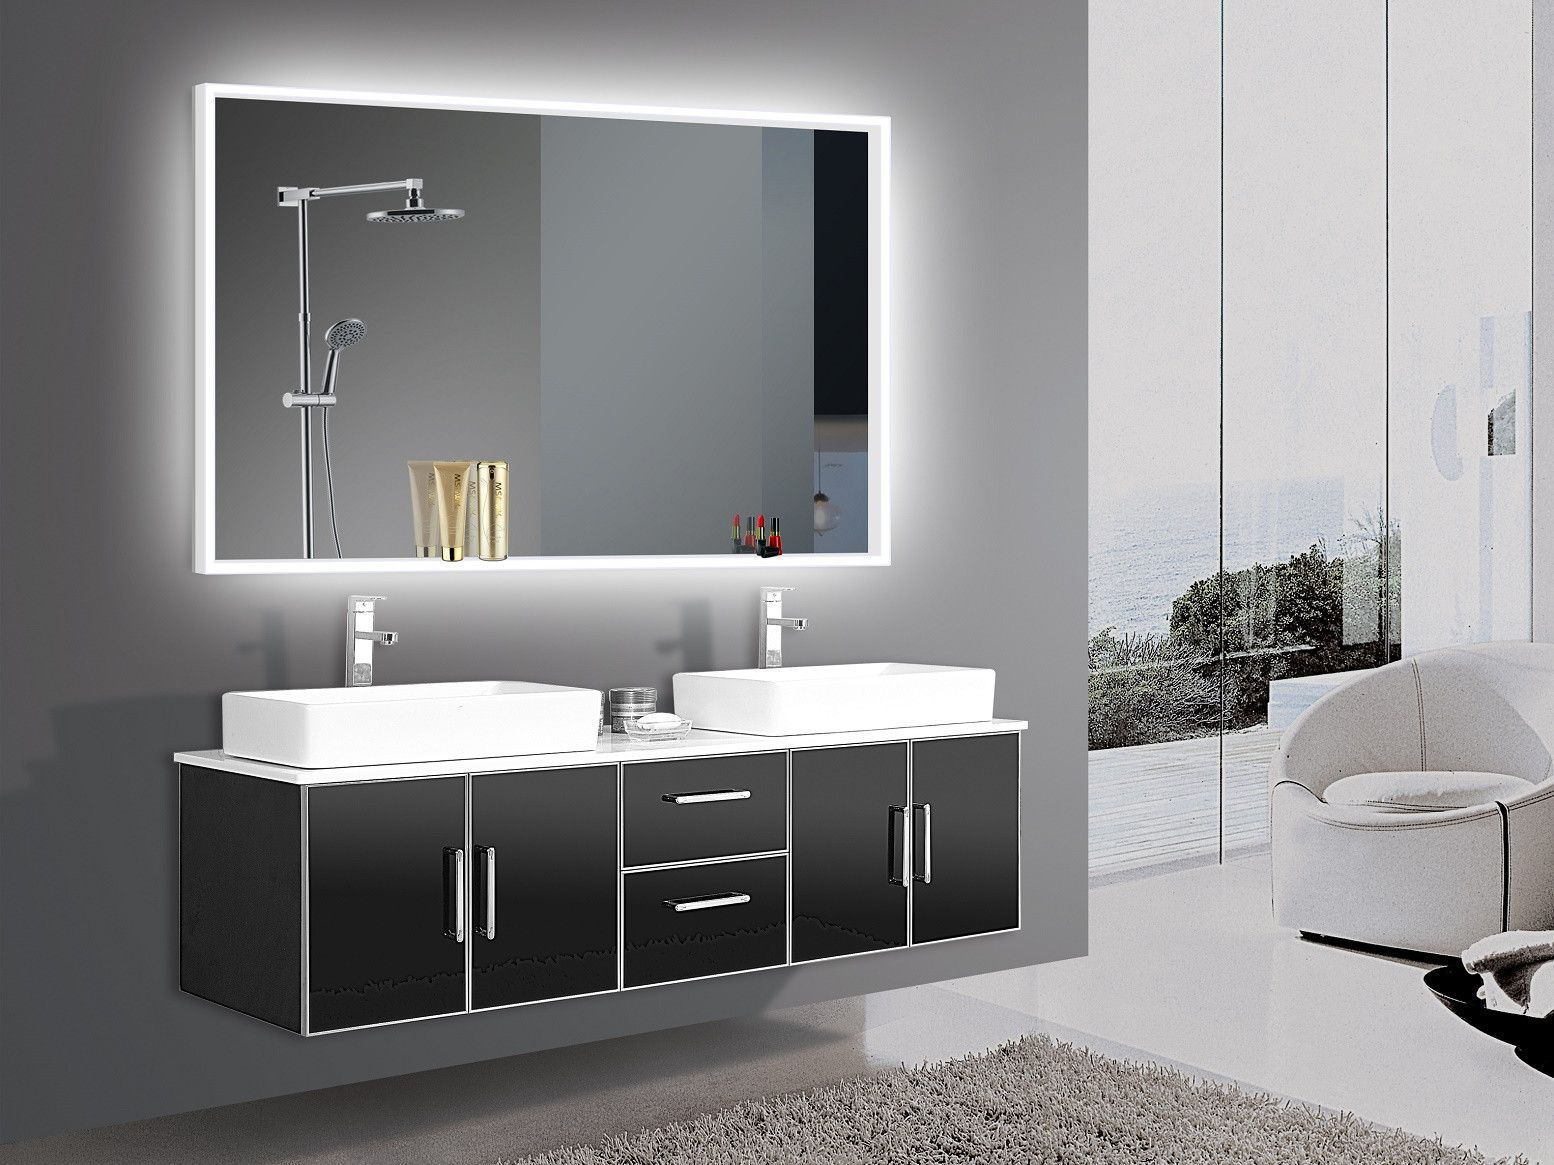 Lighted Mirror Acrylic 60 X 36 In Available 25th November Pre Order